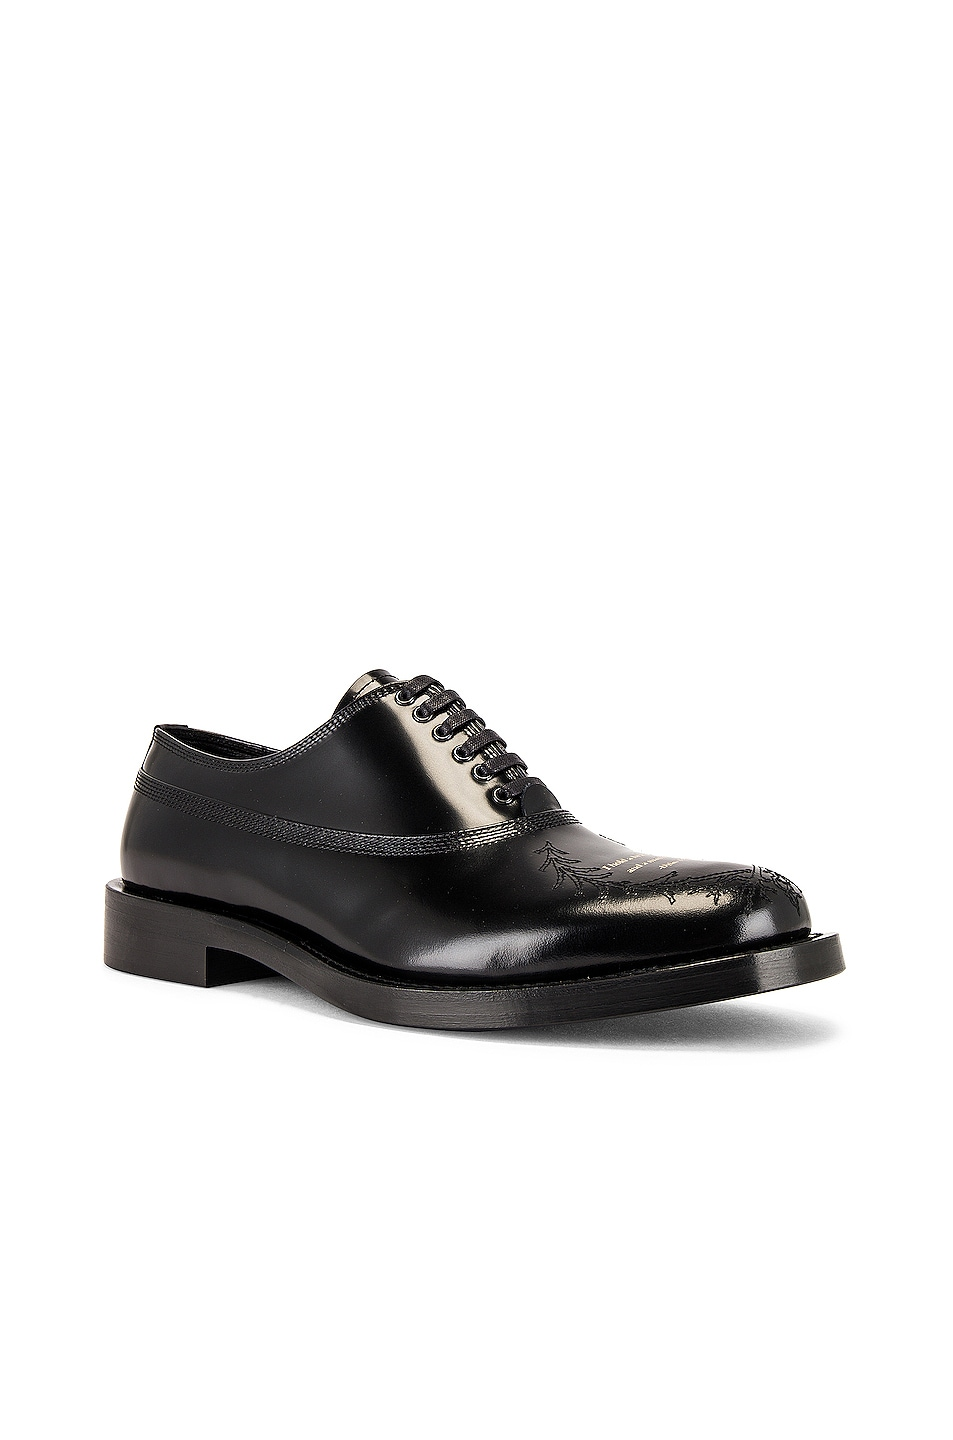 Image 1 of Undercover Lace Up Buck Shoe in Black